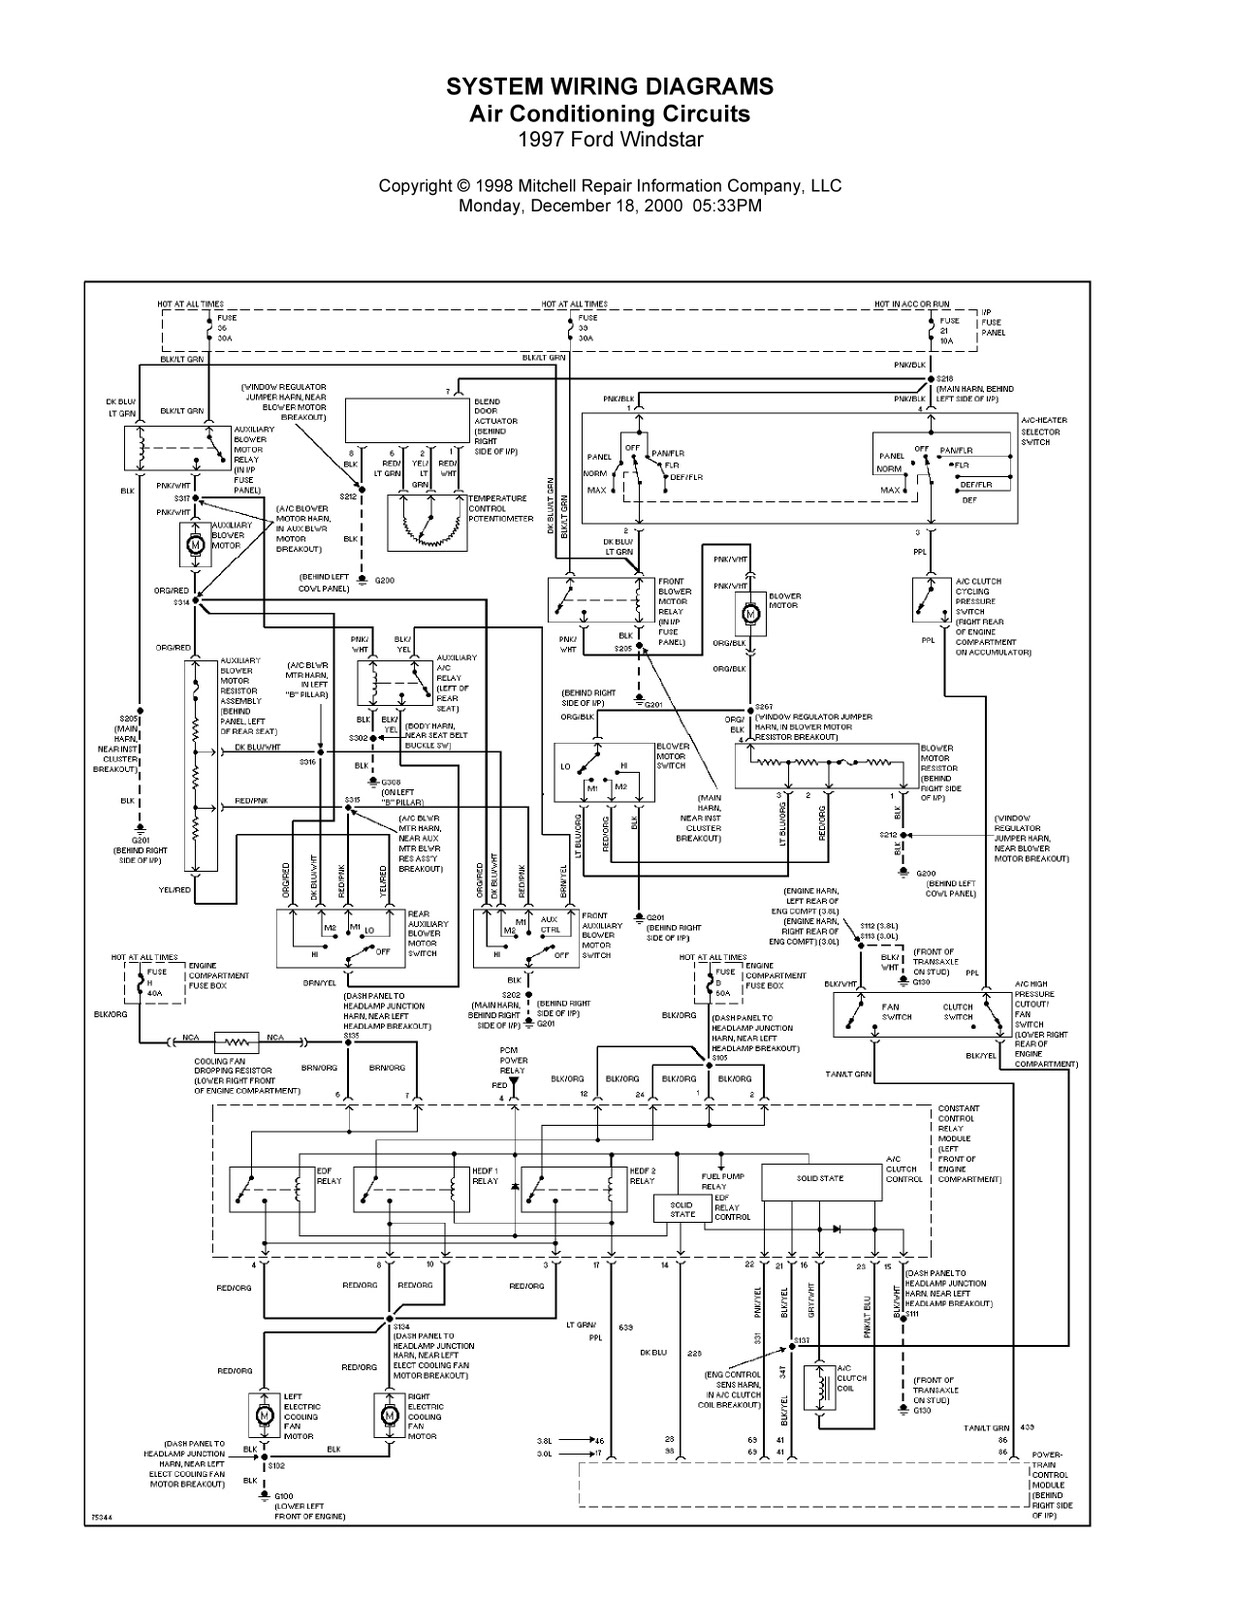 Ford Windstar Air Conditioning Diagram Wiring Diagrams Schematic